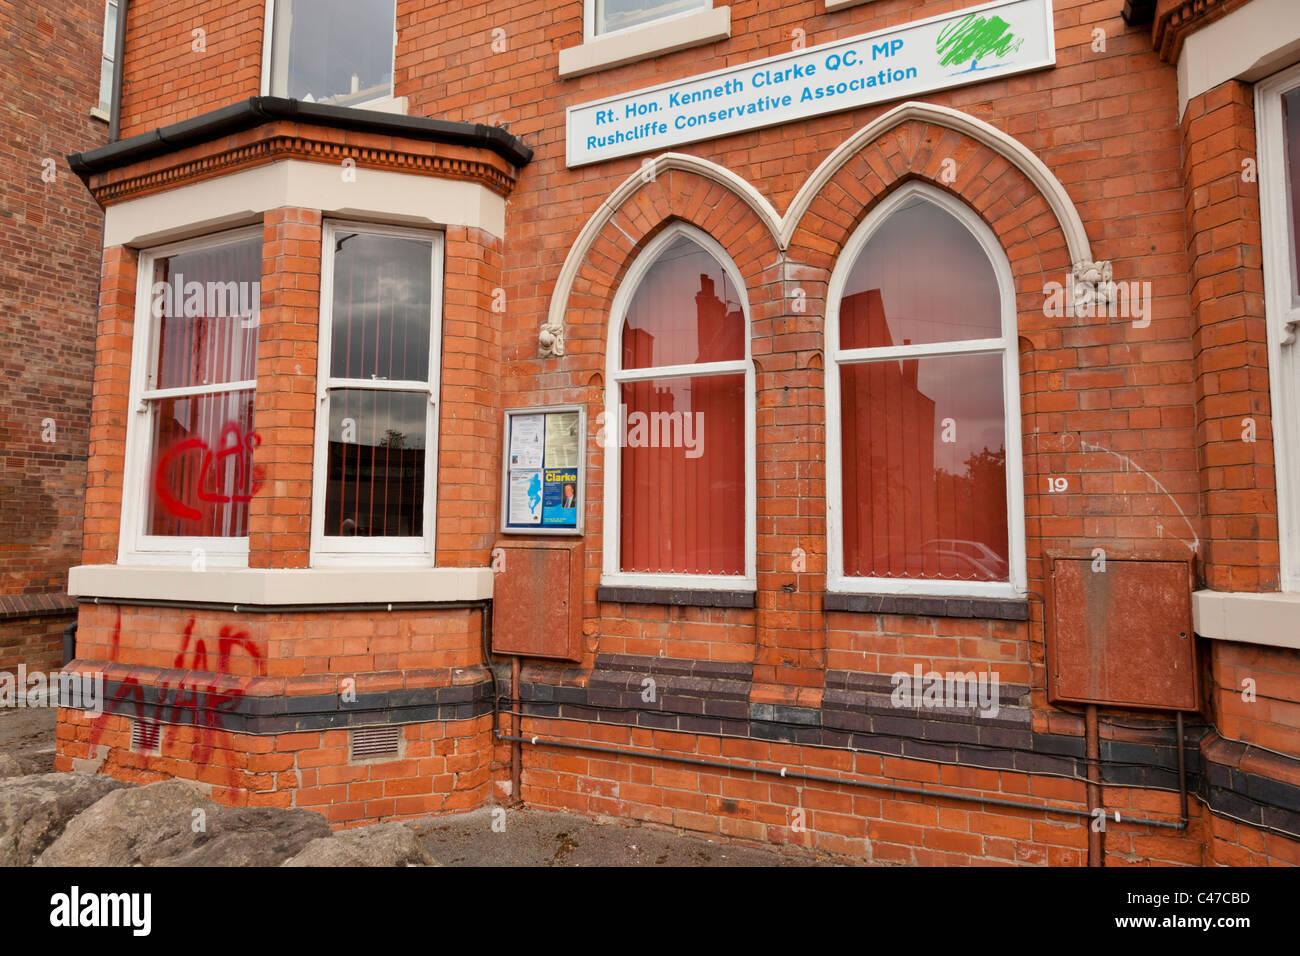 Anarchist Class War political graffiti across the front of the Rushcliffe Conservative Association Headquarters - Stock Image